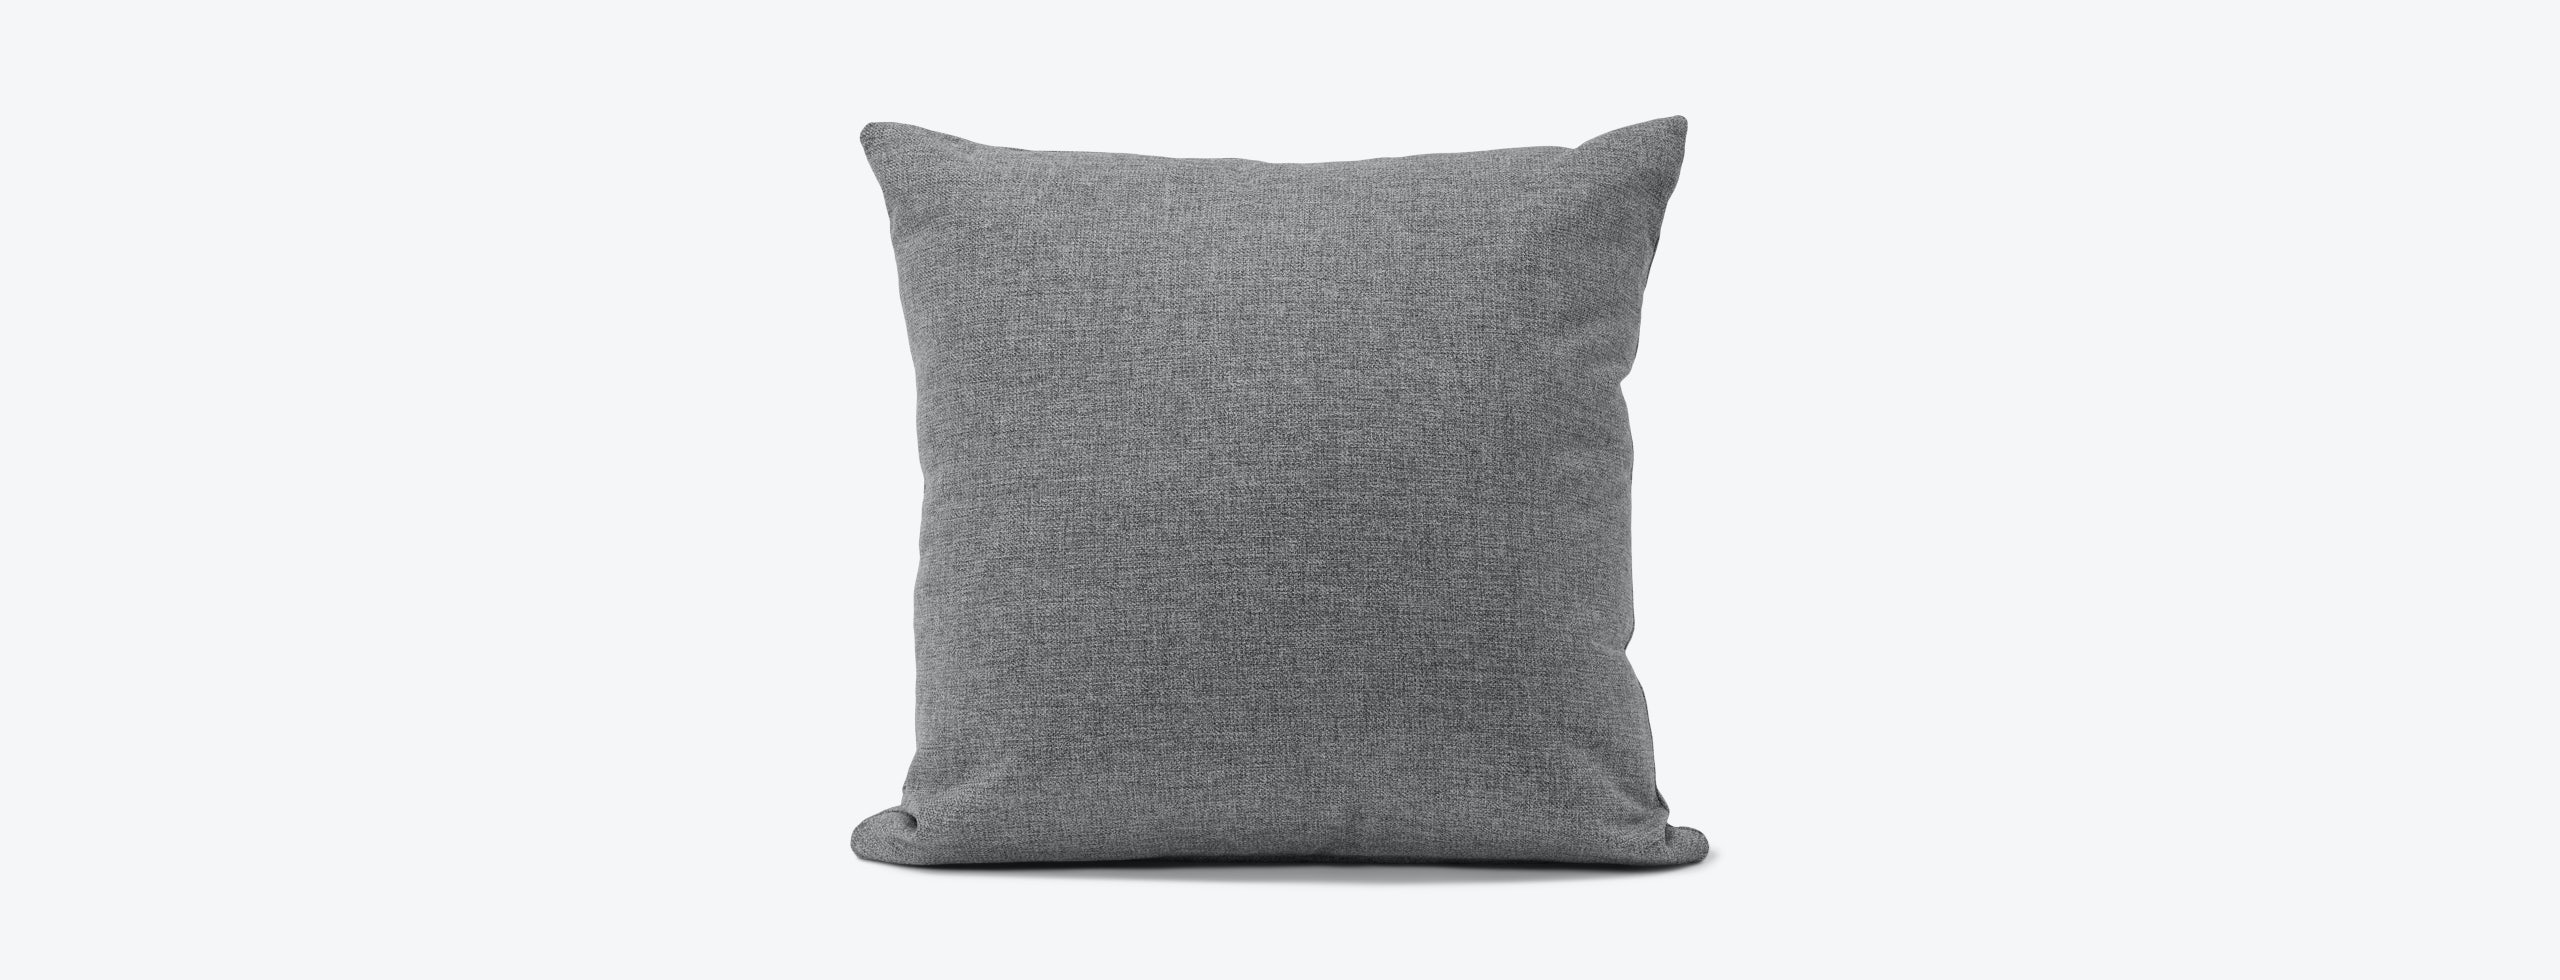 Decorative Knife Edge Pillow Taylor Felt Grey